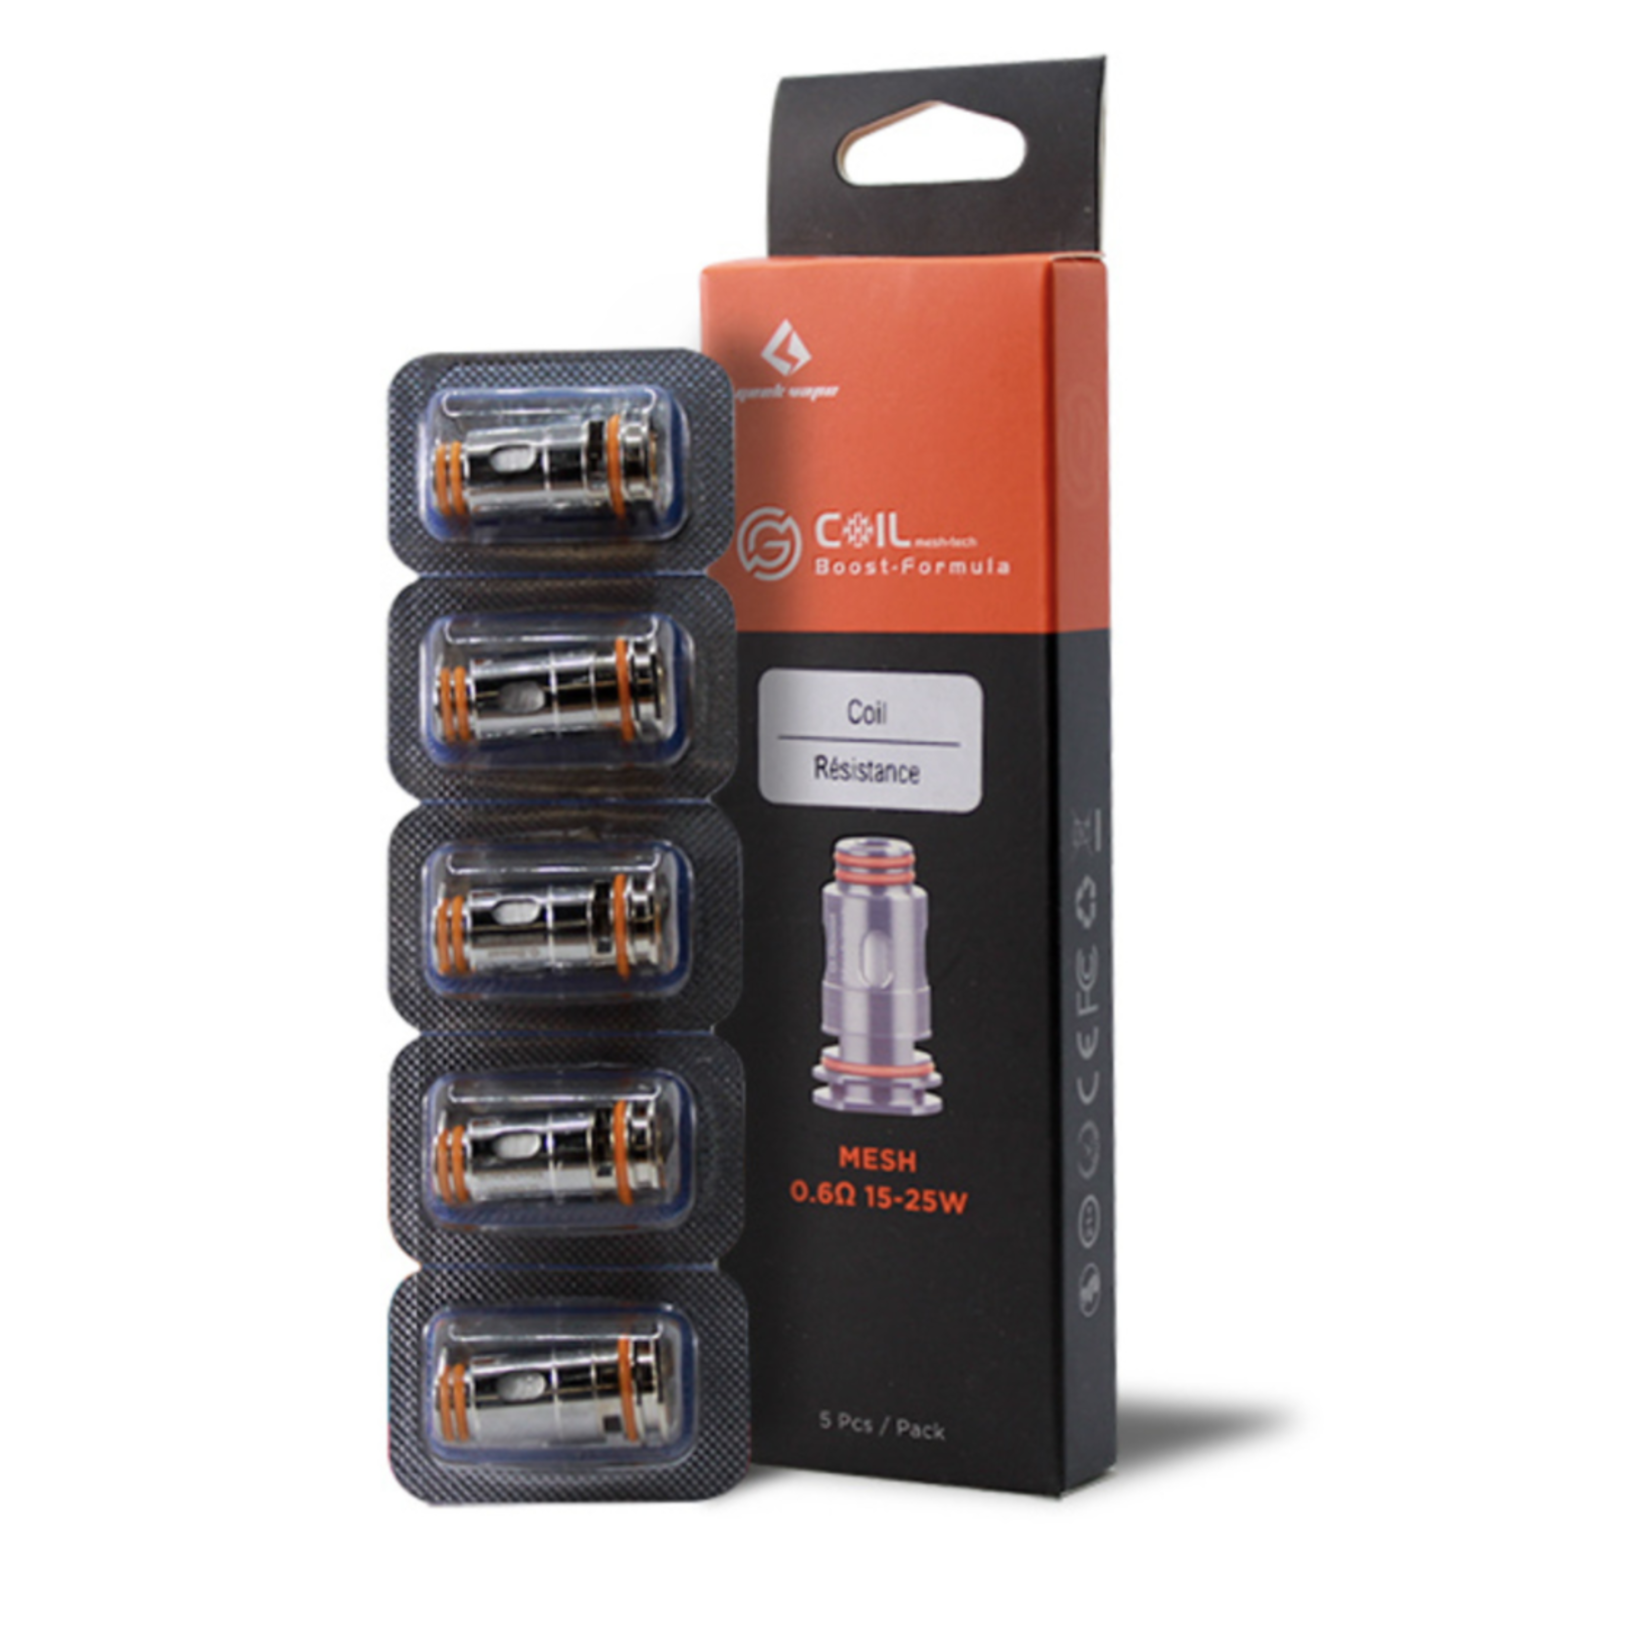 Geekvape Aegis Boost Replacement Coil 0.6 ohm Pack (5 pcs)